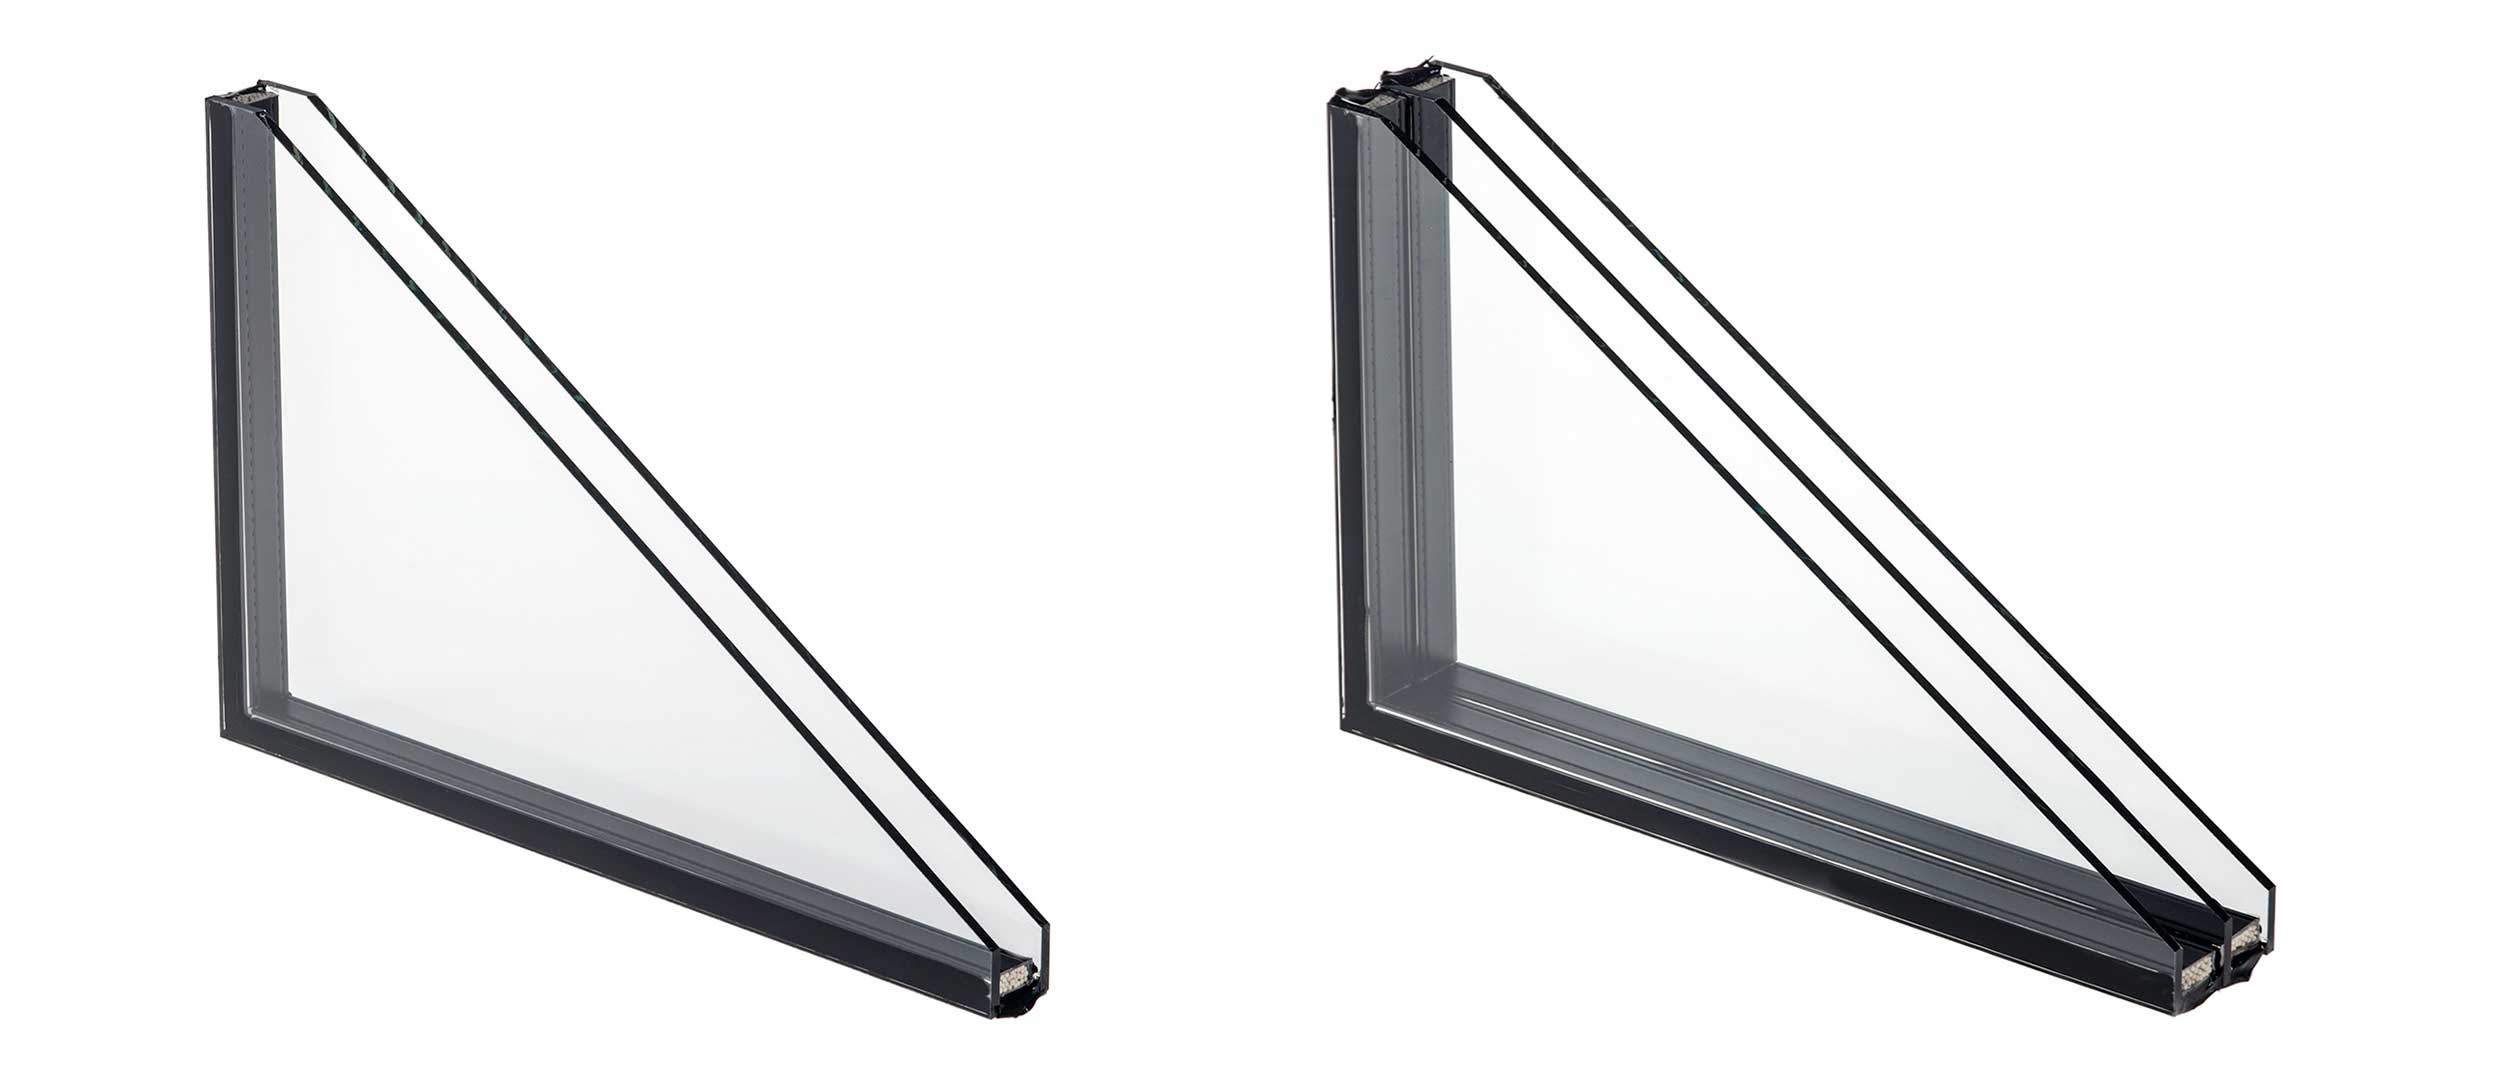 Klarvindu double or triple glazing.jpg